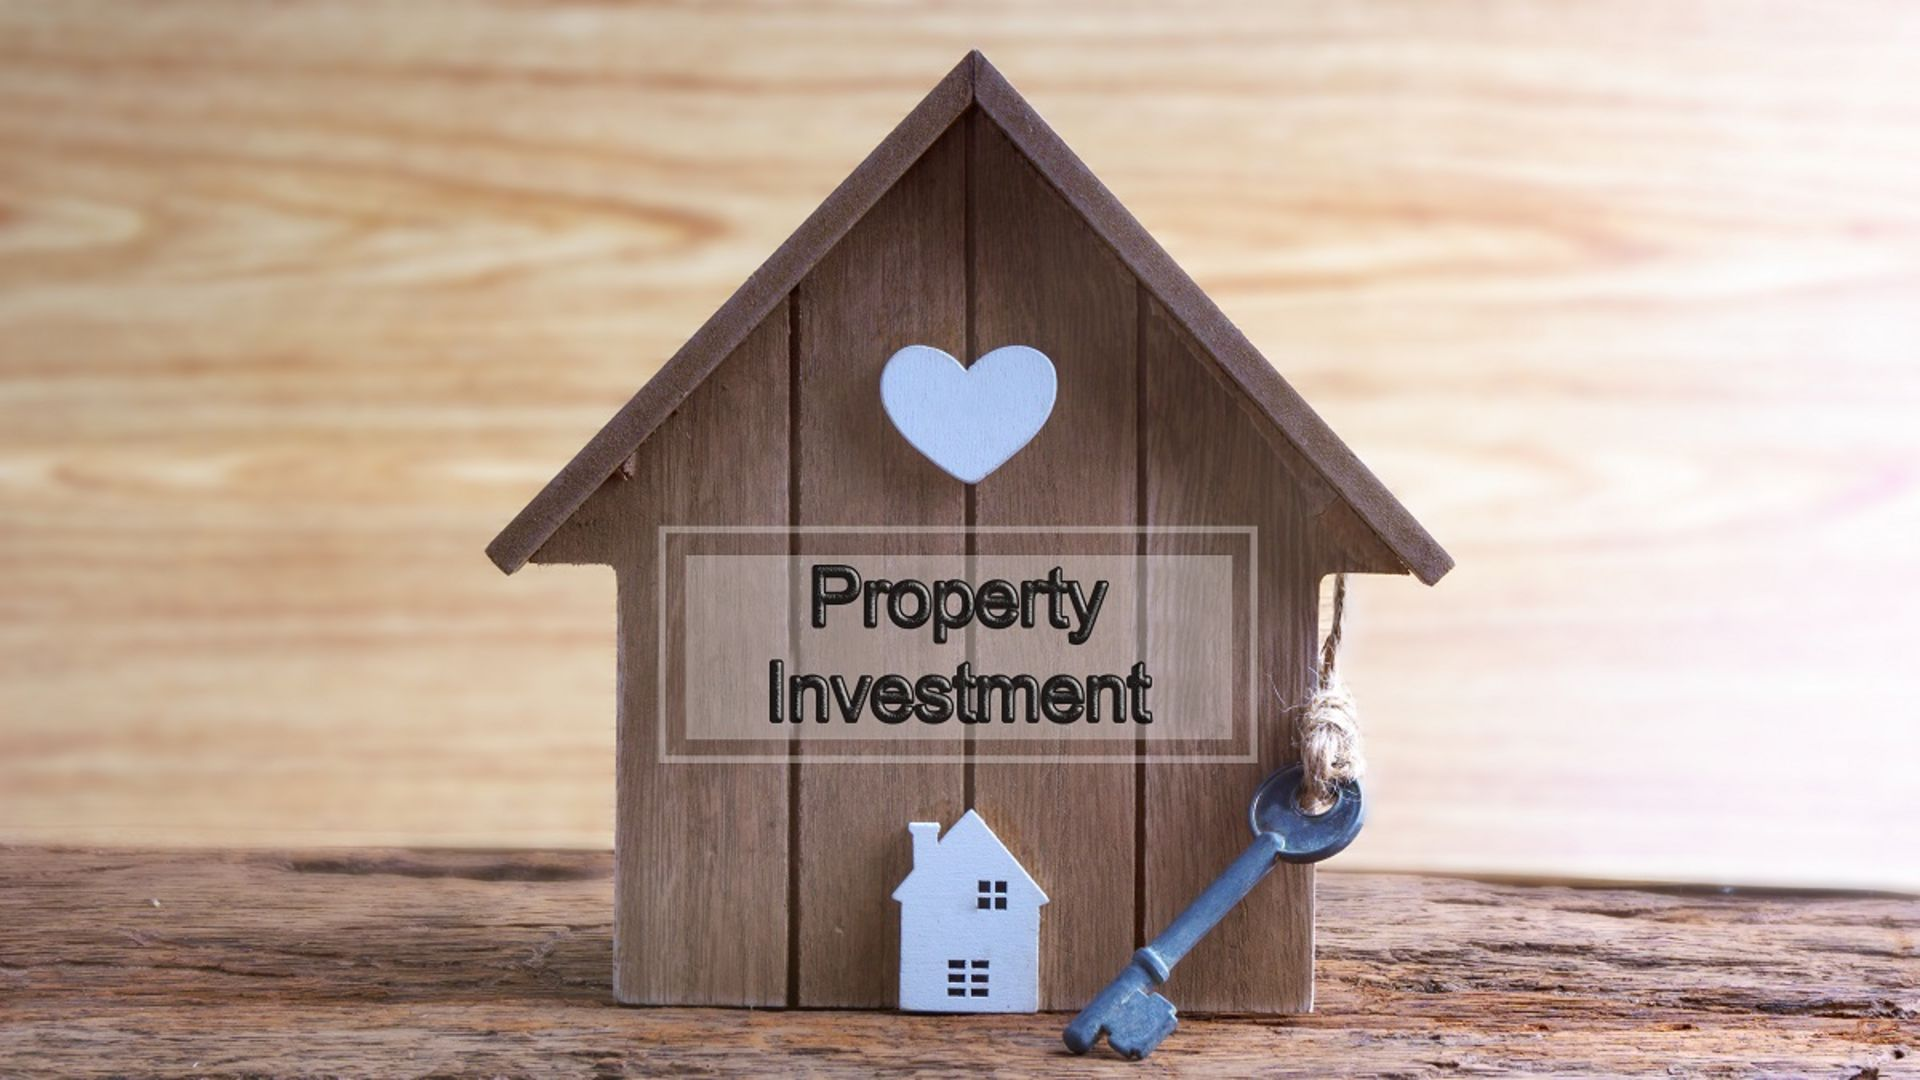 Diversify your portfolio with investment property